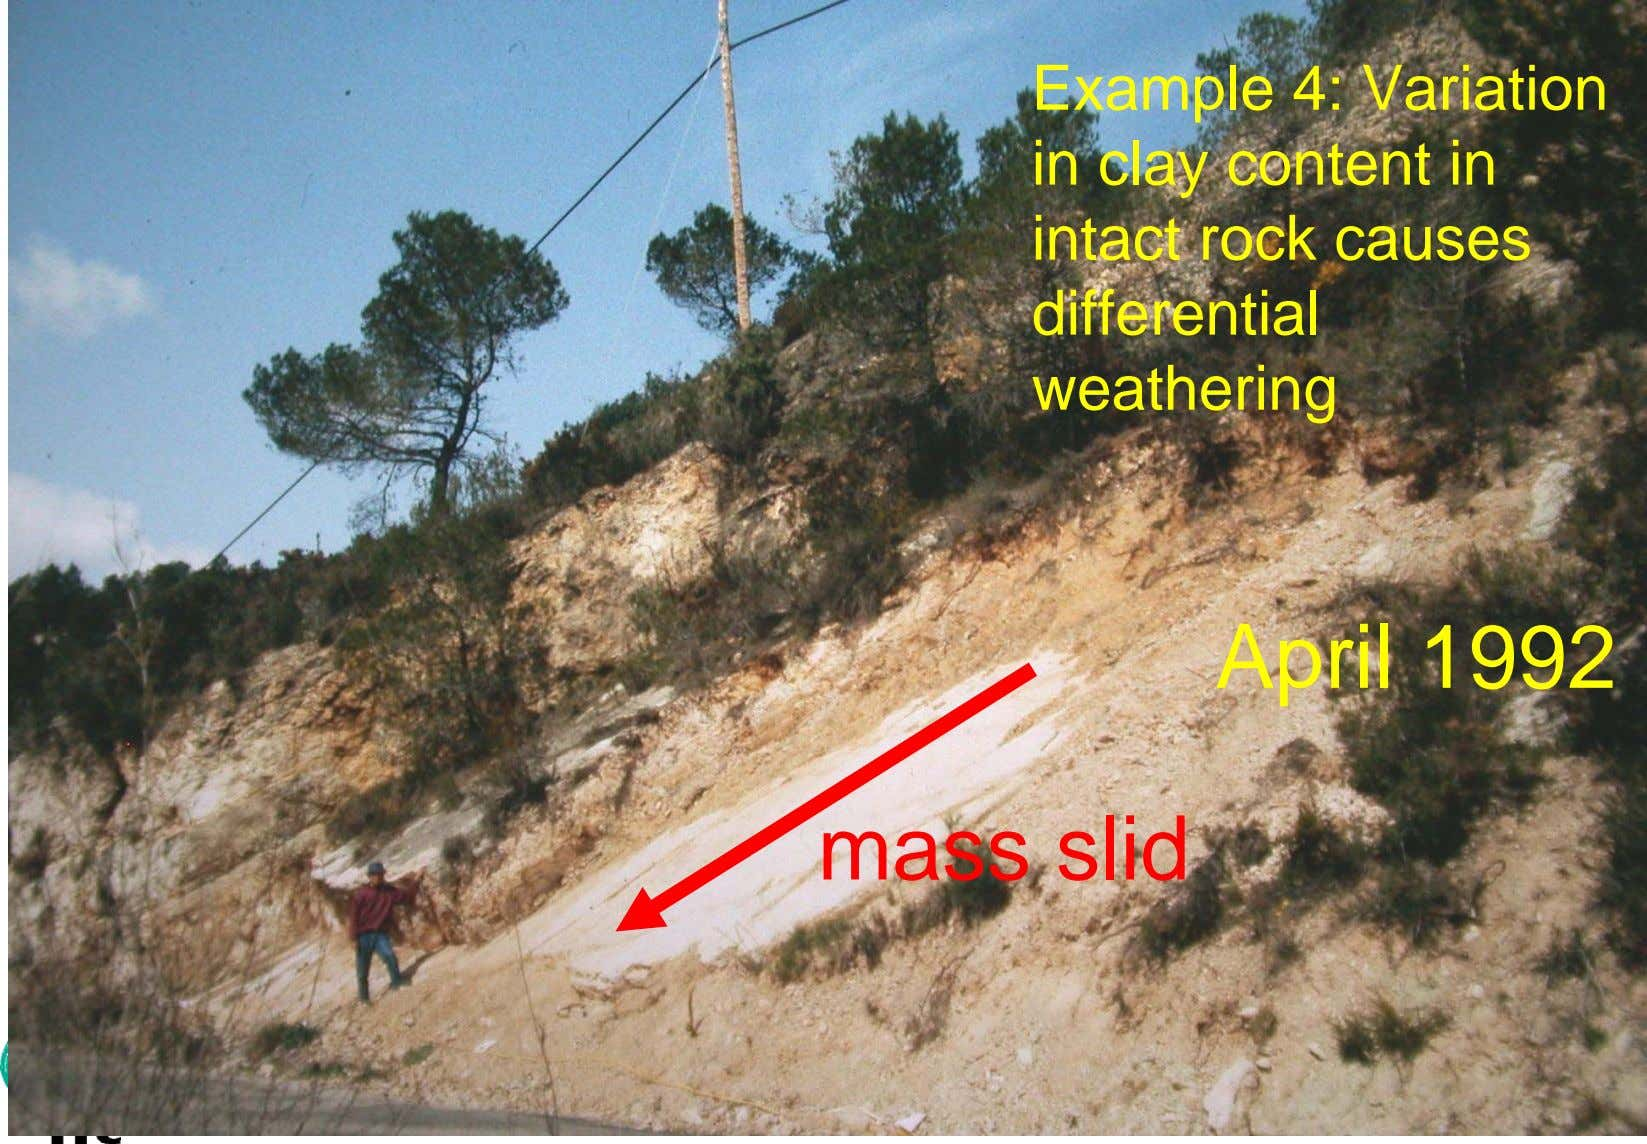 Example 4: Variation in clay content in intact rock causes differential weathering April 1992 mass